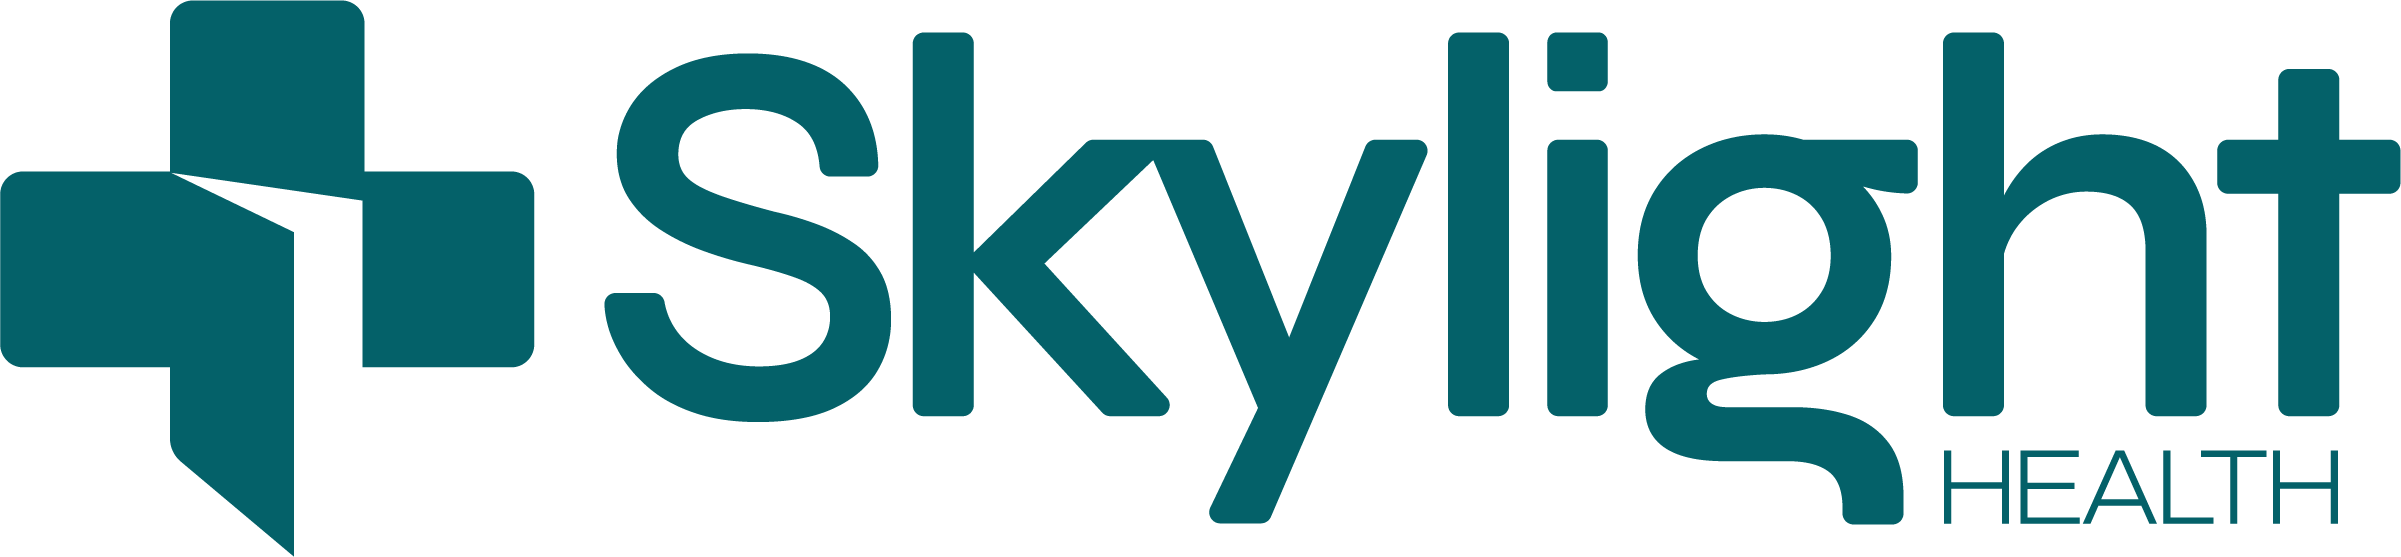 Skylight Health Announces 75% Voluntary Share Lock-Up With 100% Lock-Up from Insiders